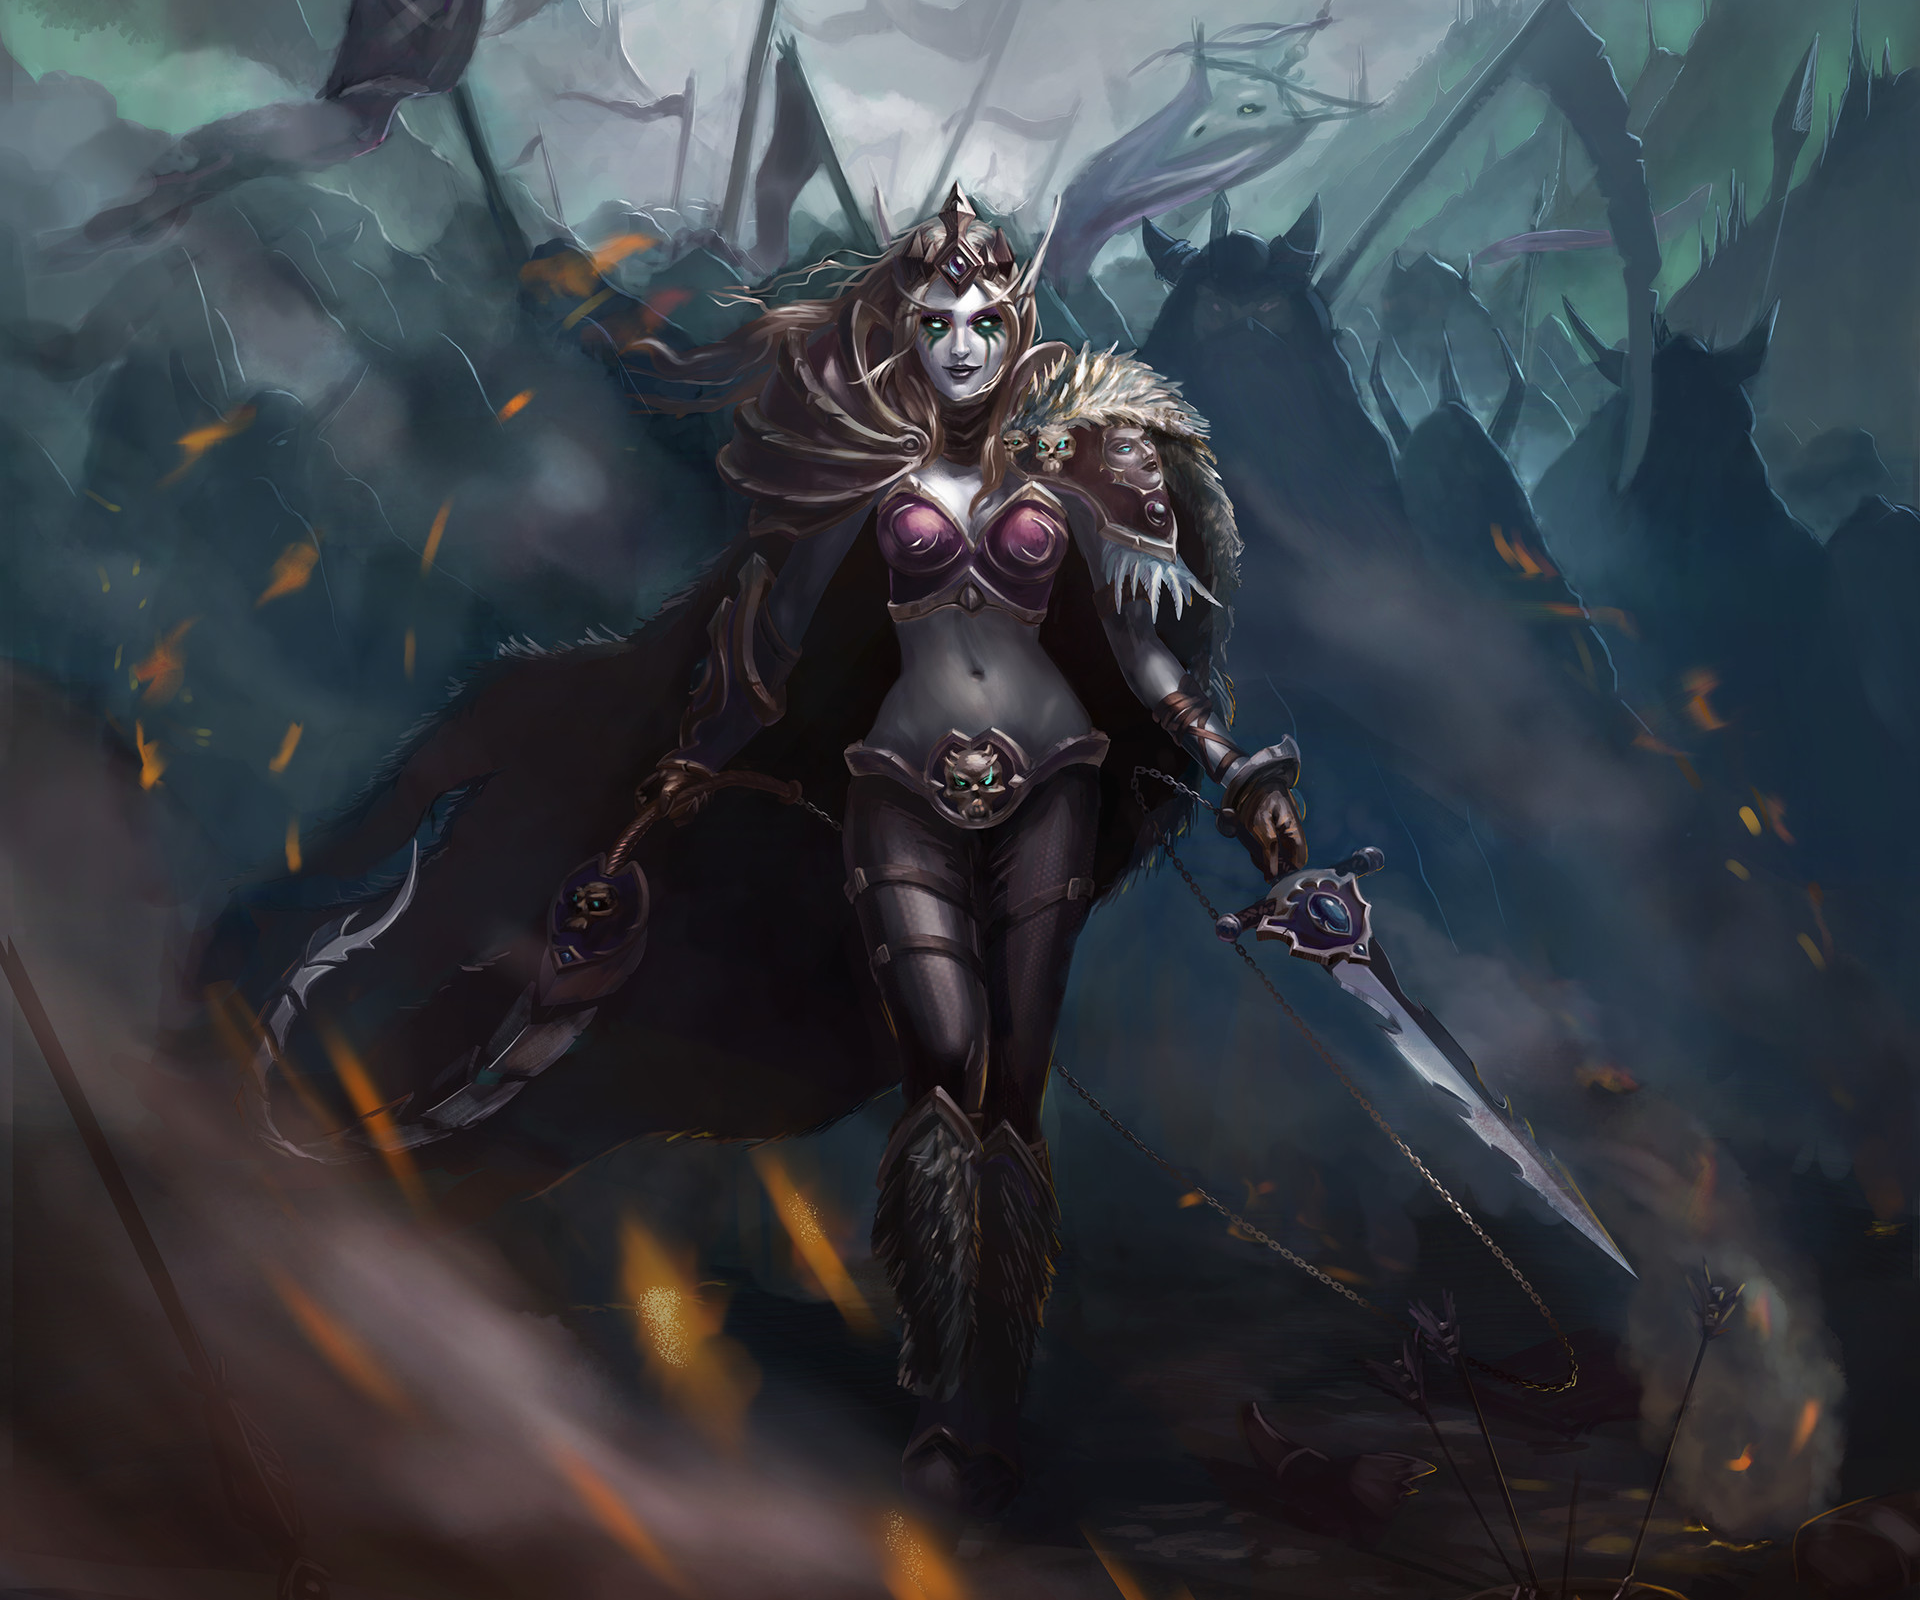 Diablo 3 Wallpaper 1920x1080: Warrior Woman HD Wallpaper